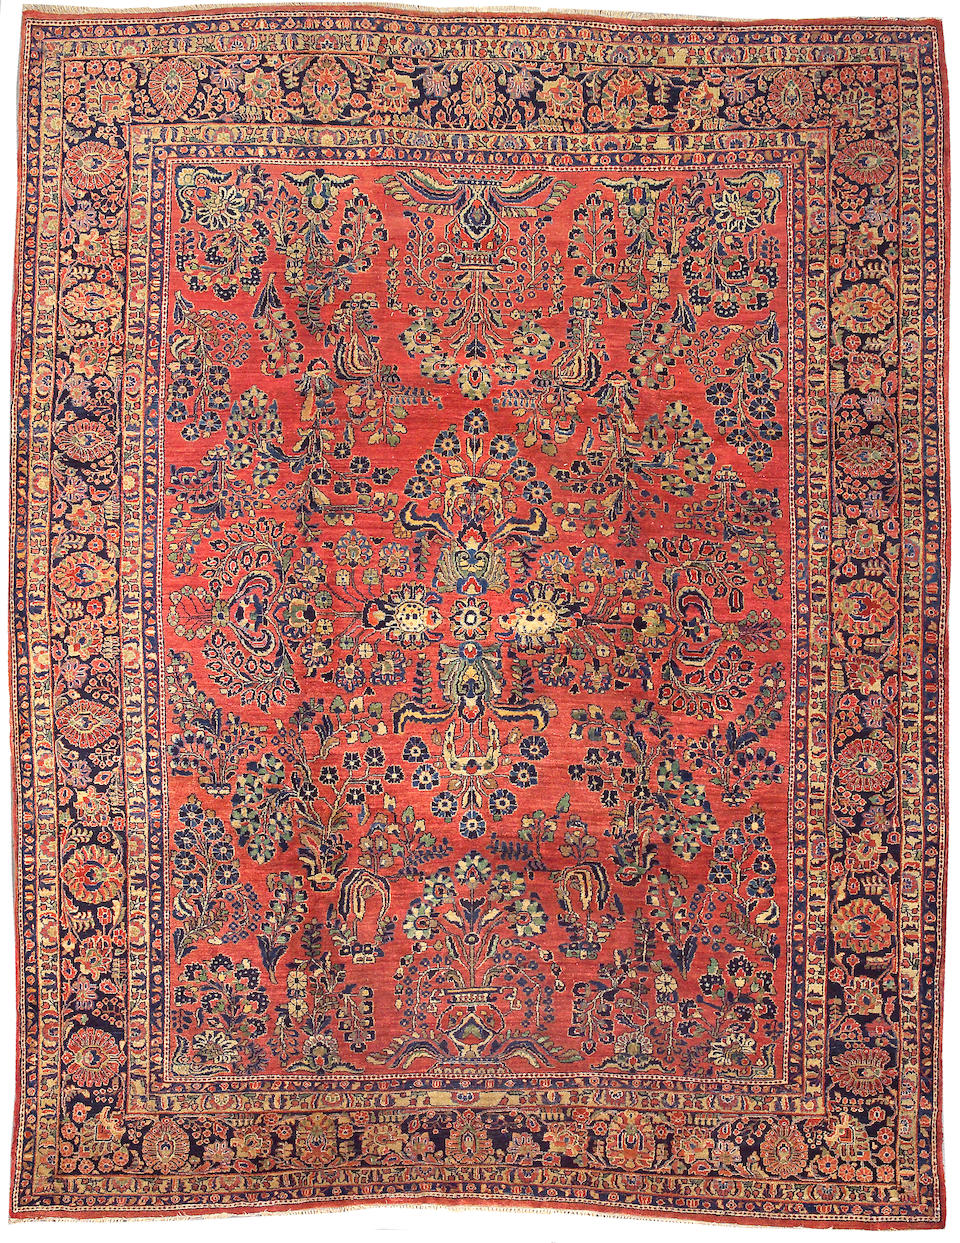 A Sarouk carpet Central Persia, size approximately 8ft. 11in. x 11ft. 4in.